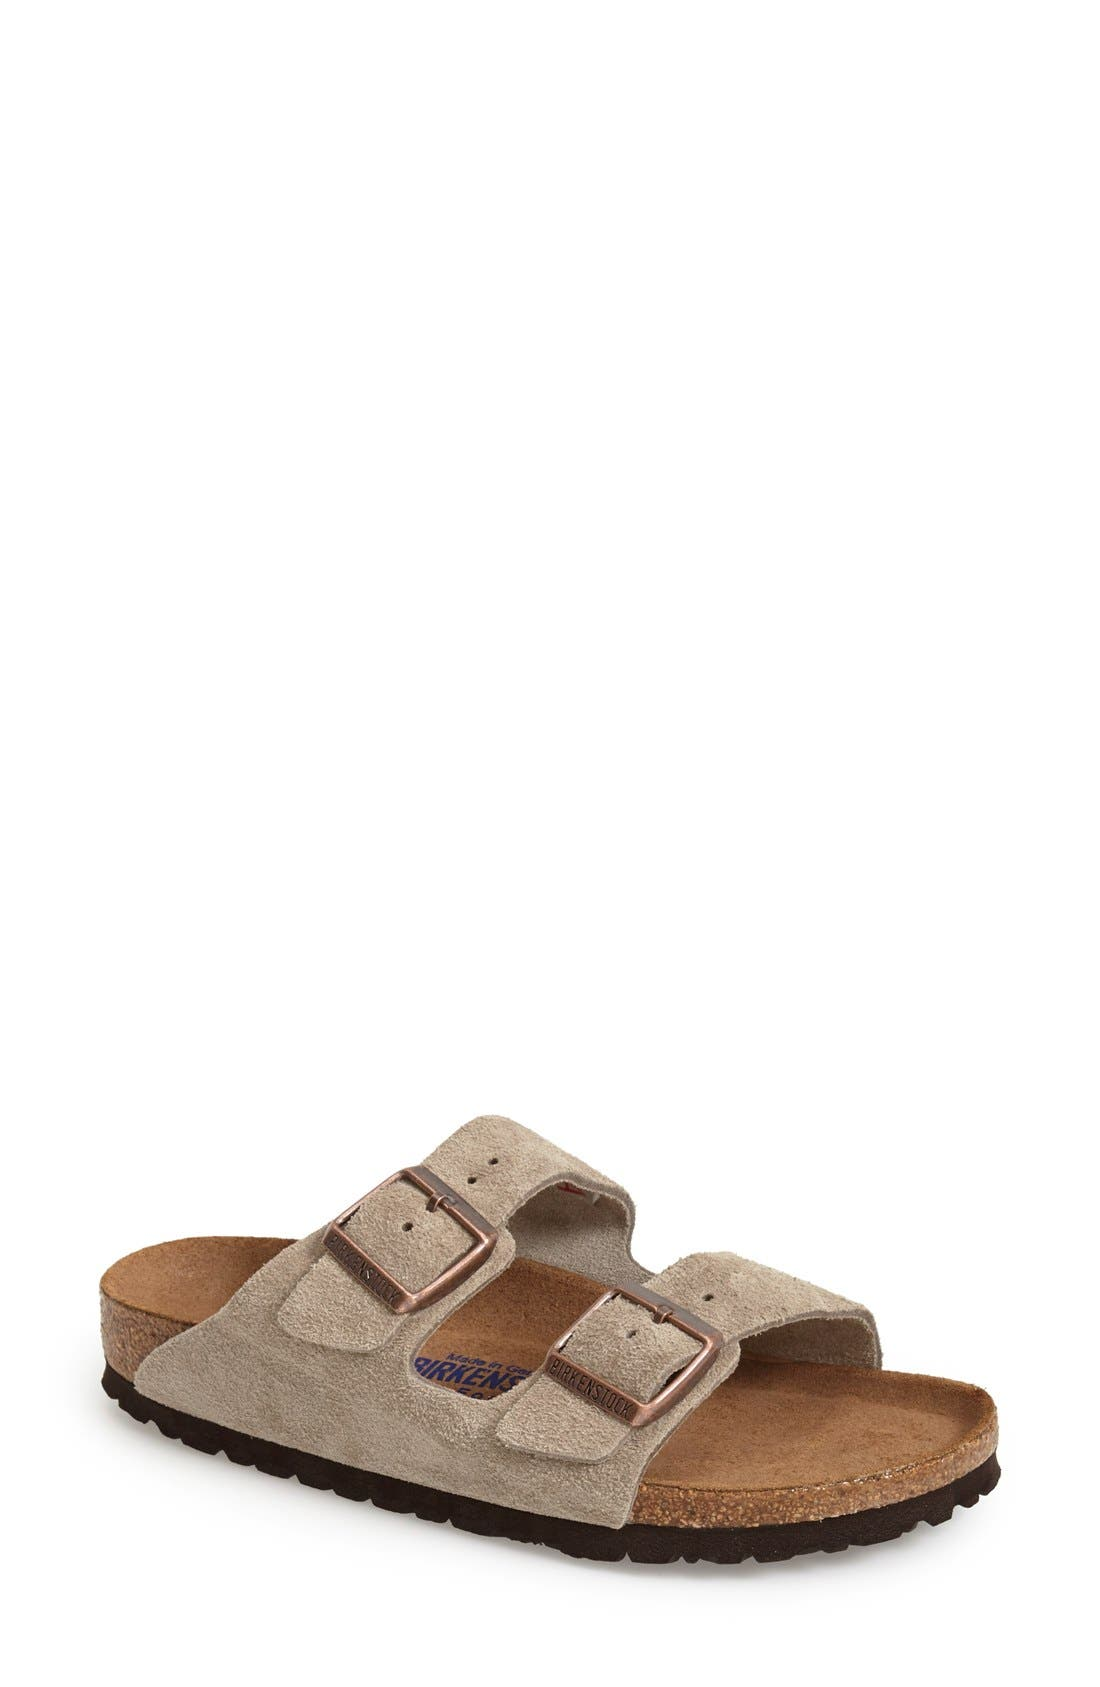 'Arizona' Soft Footbed Suede Sandal,                         Main,                         color, Taupe Suede